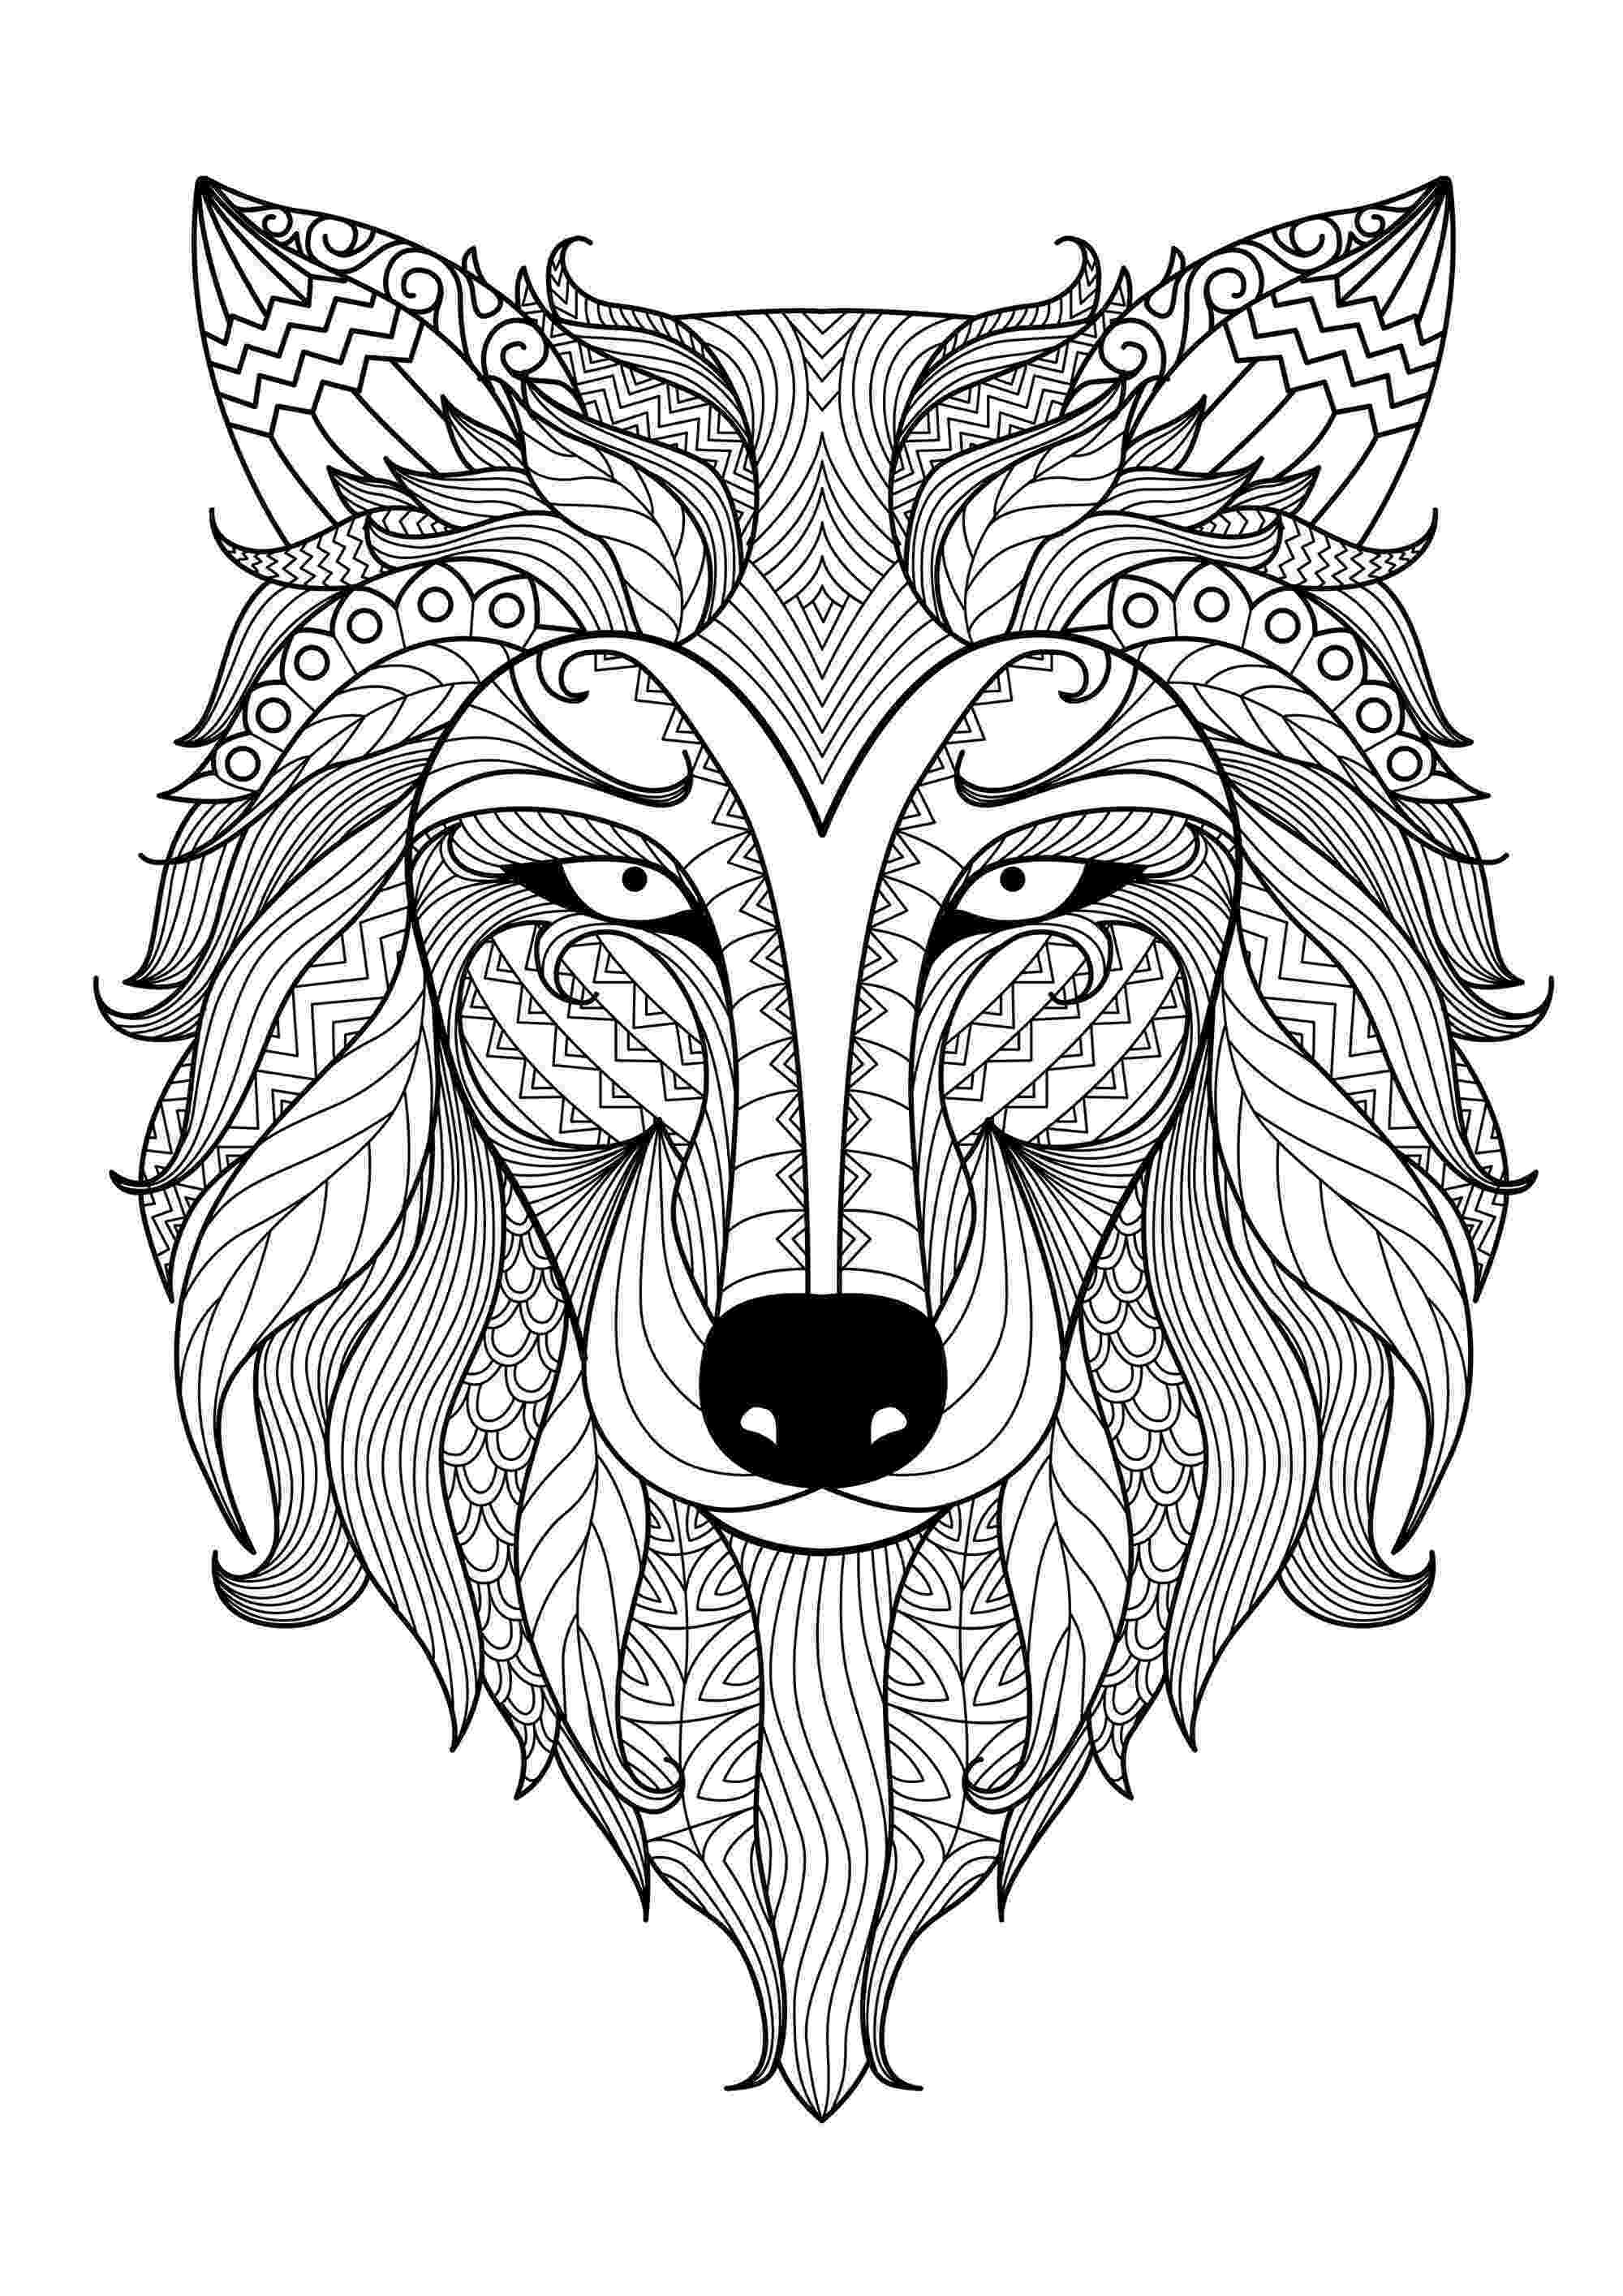 wolf face coloring pages wolf face coloring pages at getdrawings free download wolf coloring pages face